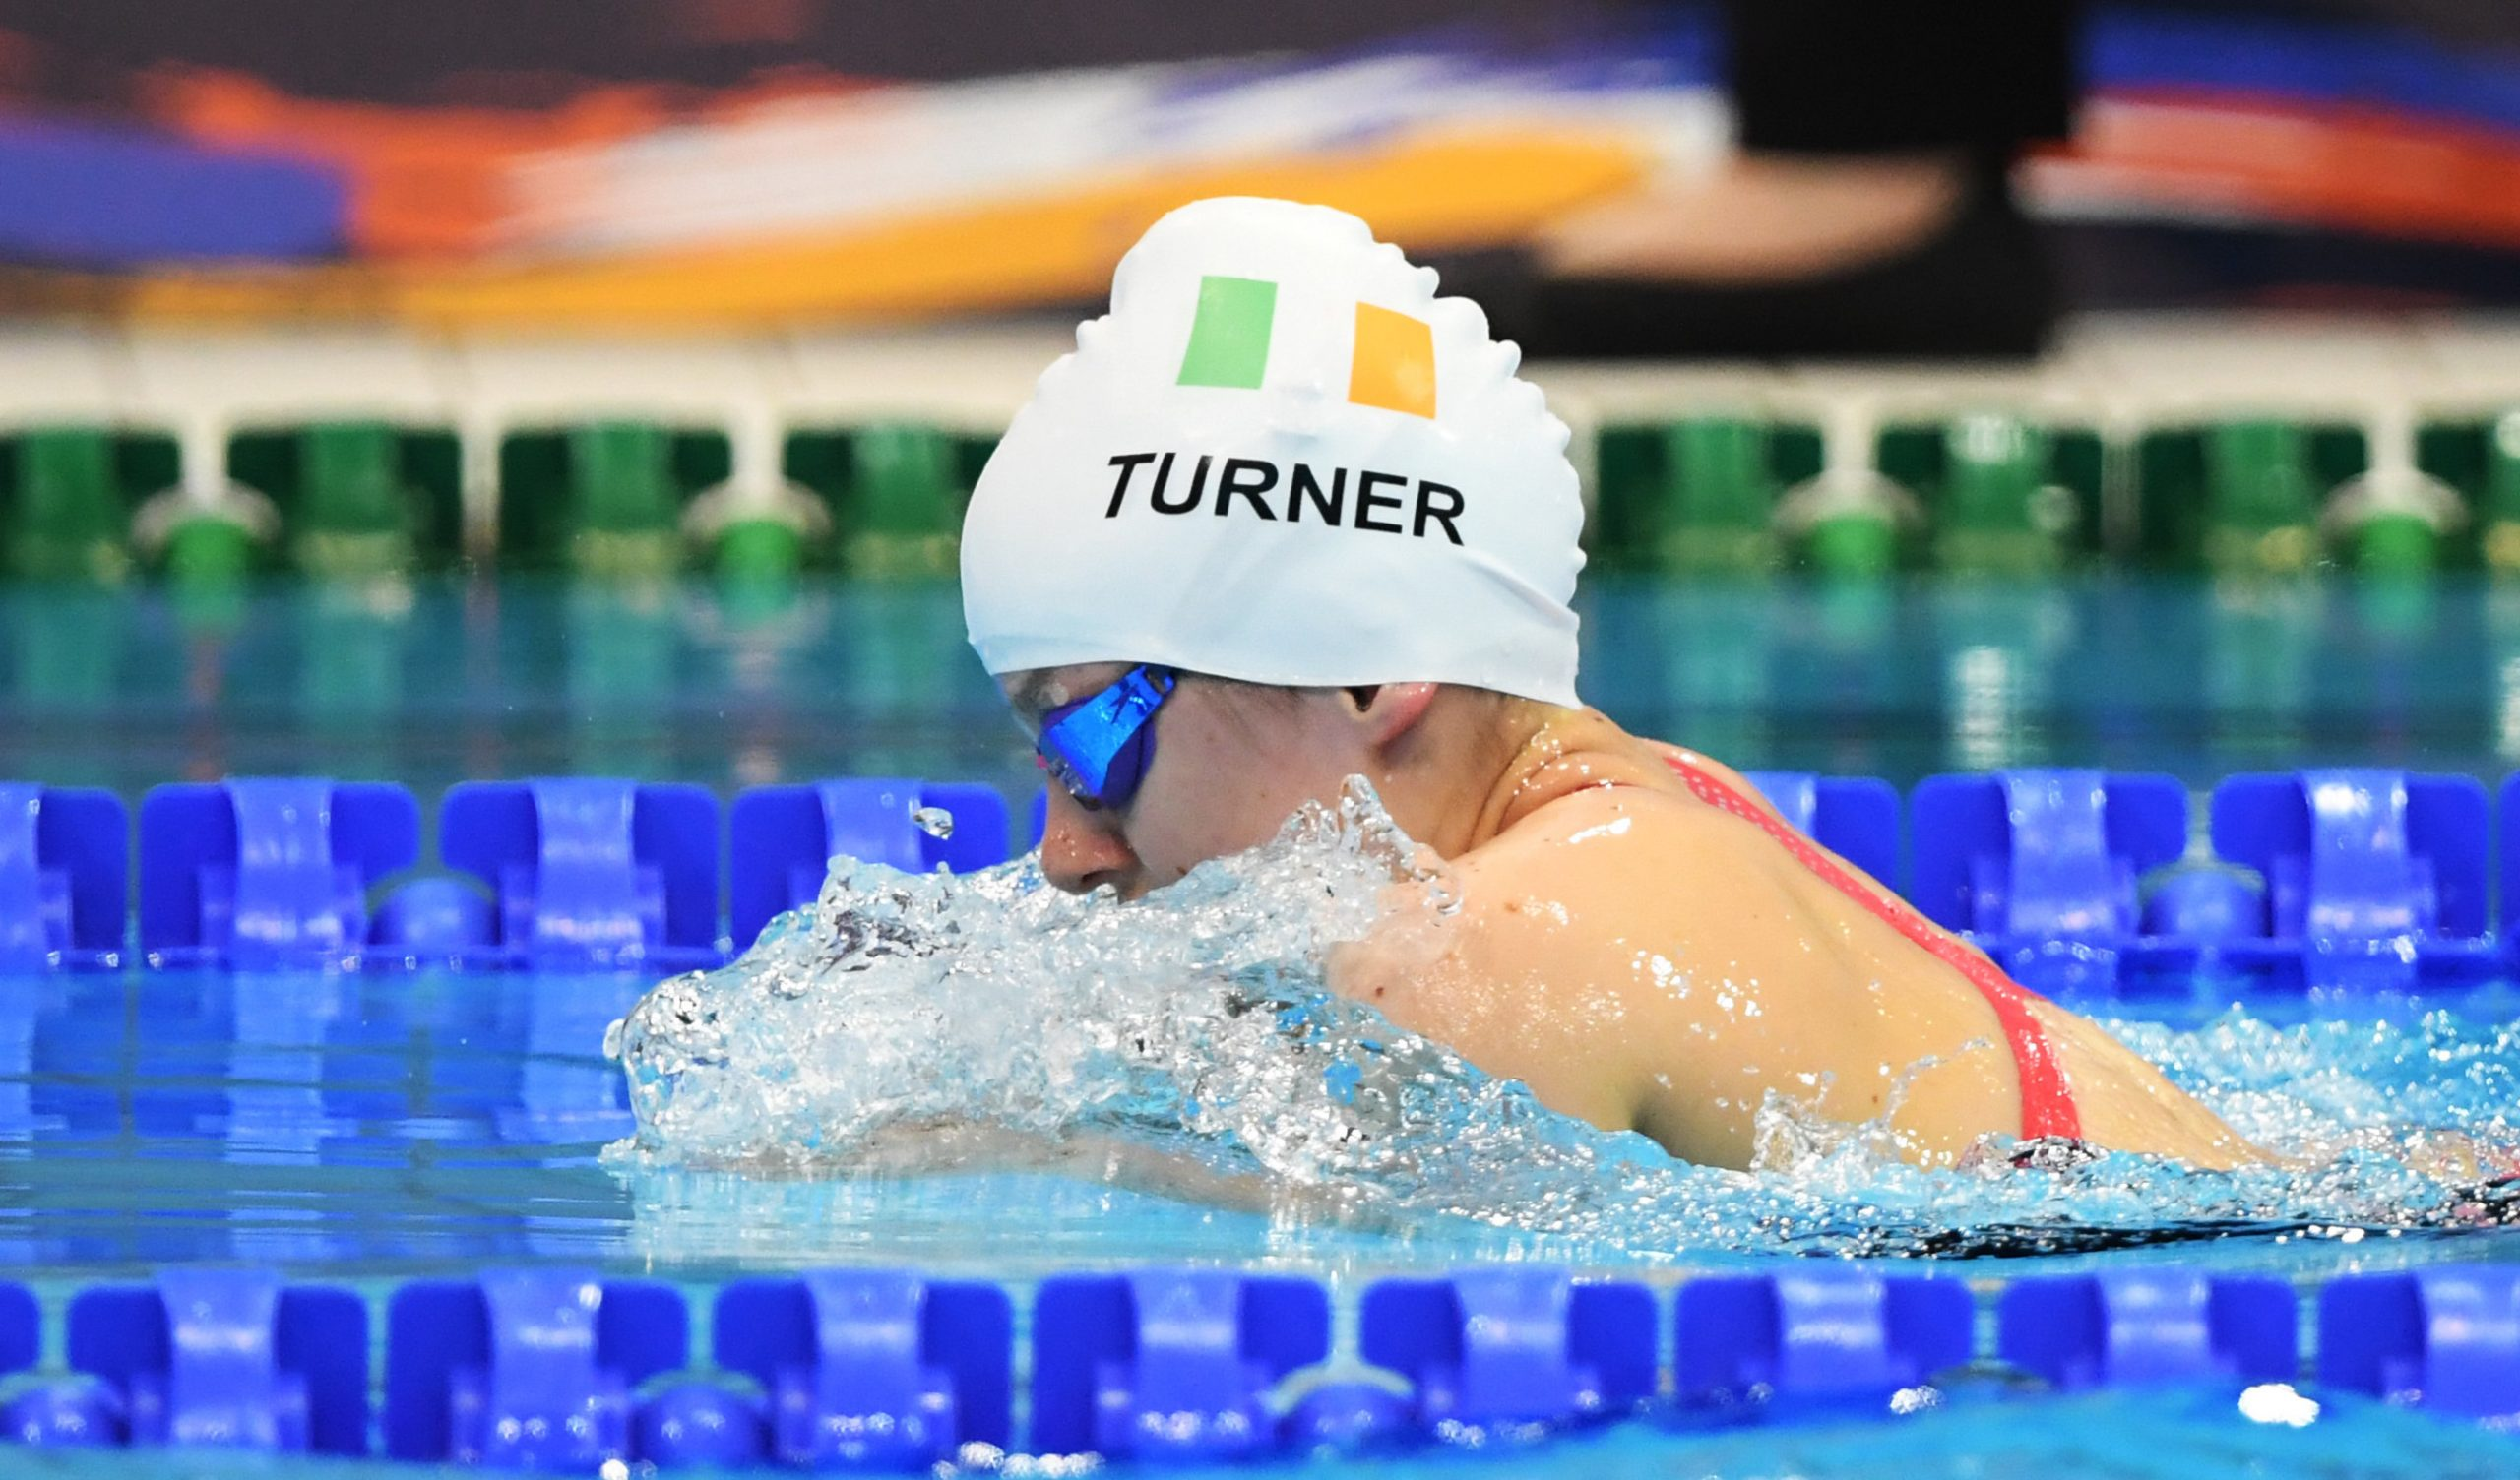 15 September 2019: Nicole Turner of Ireland competes in the final of the Women's 100m Breaststroke during day seven of the World Para Swimming Championships 2019 at London Aquatic Centre in London, England. Photo by Tino Henschel/Sportsfile